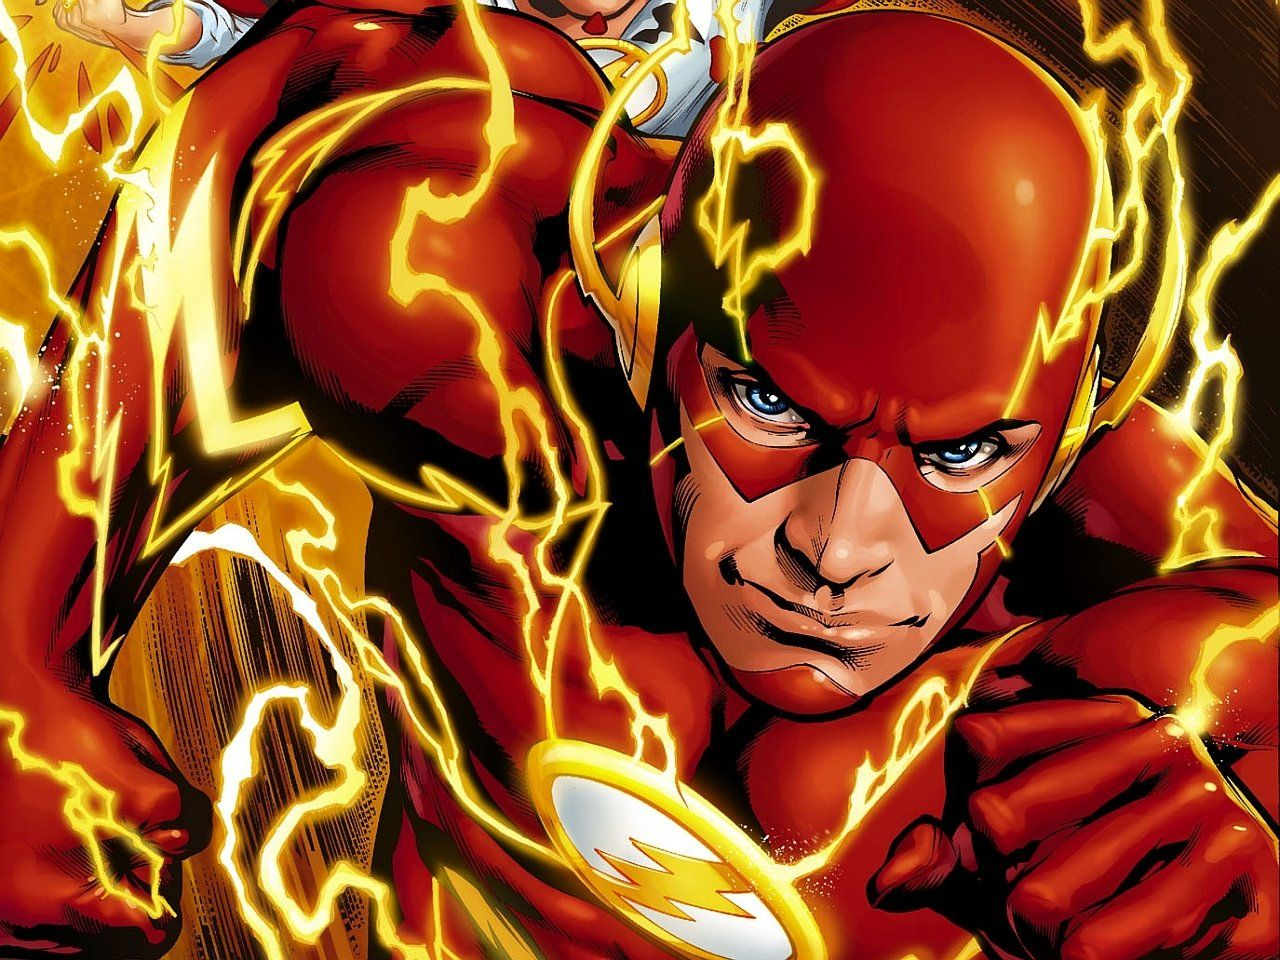 188 Flash Hd Wallpapers Backgrounds Wallpaper Abyss Flash